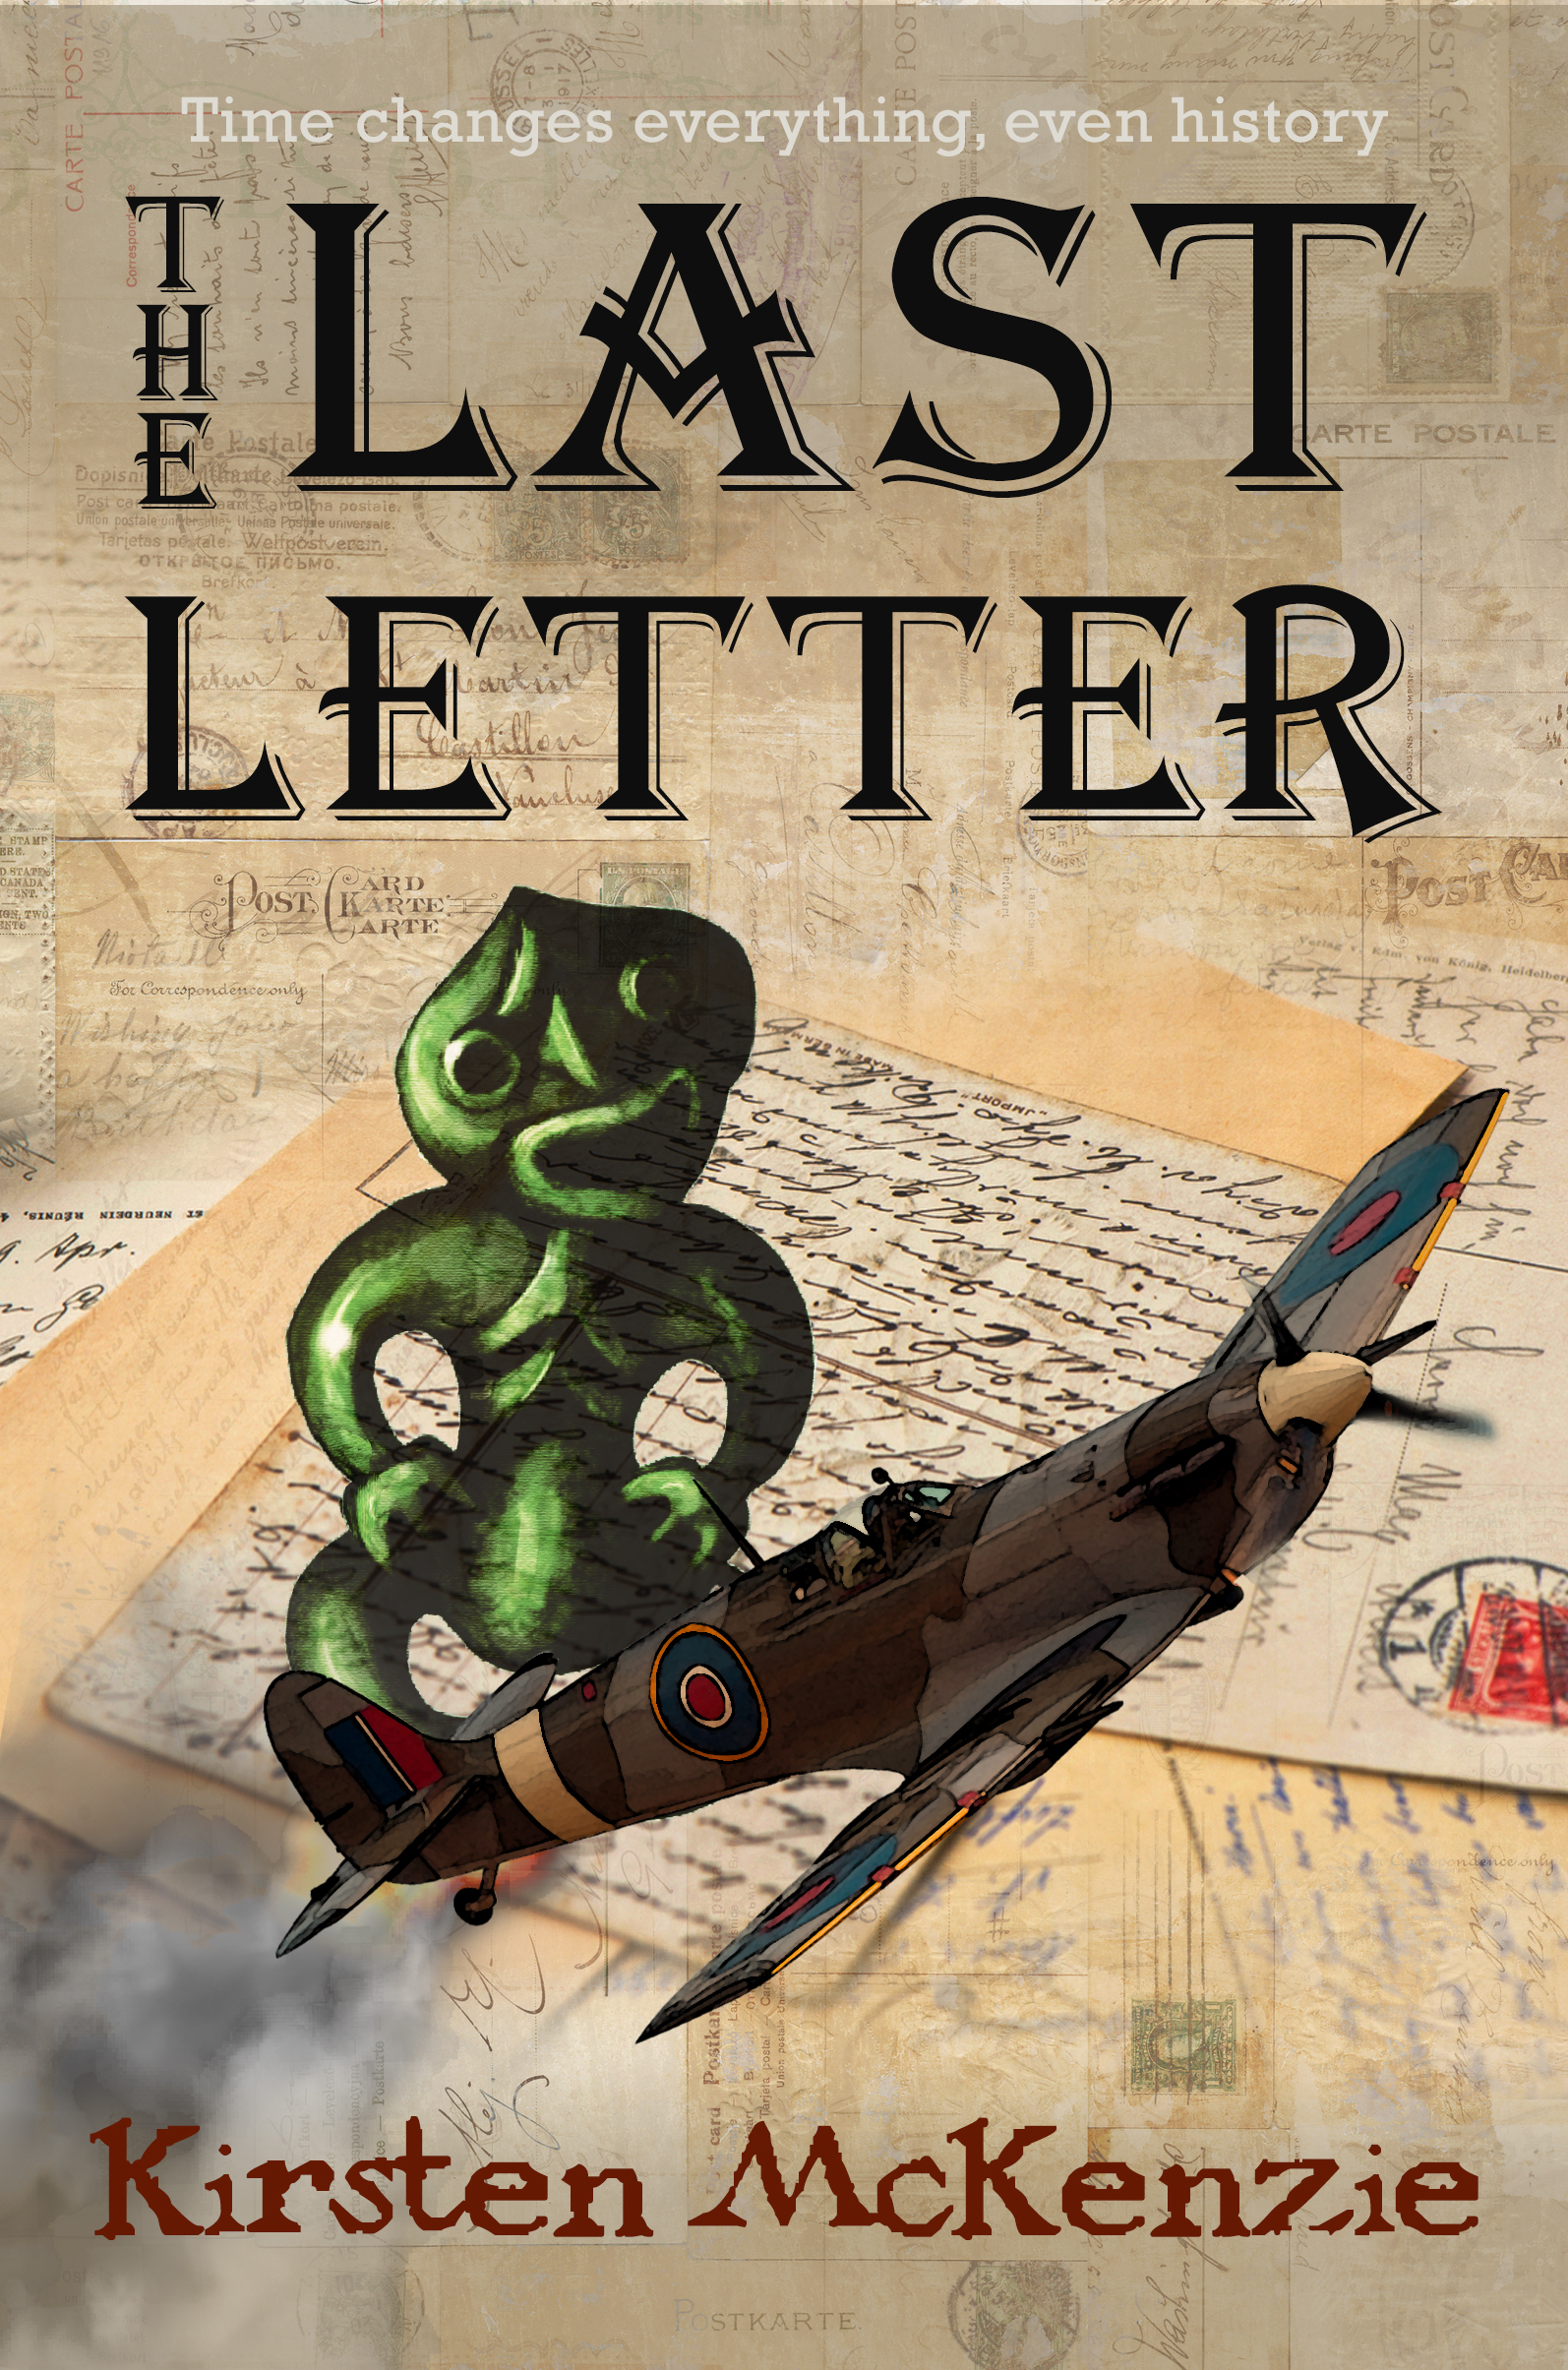 Draft cover #3 for 'The Last Letter'